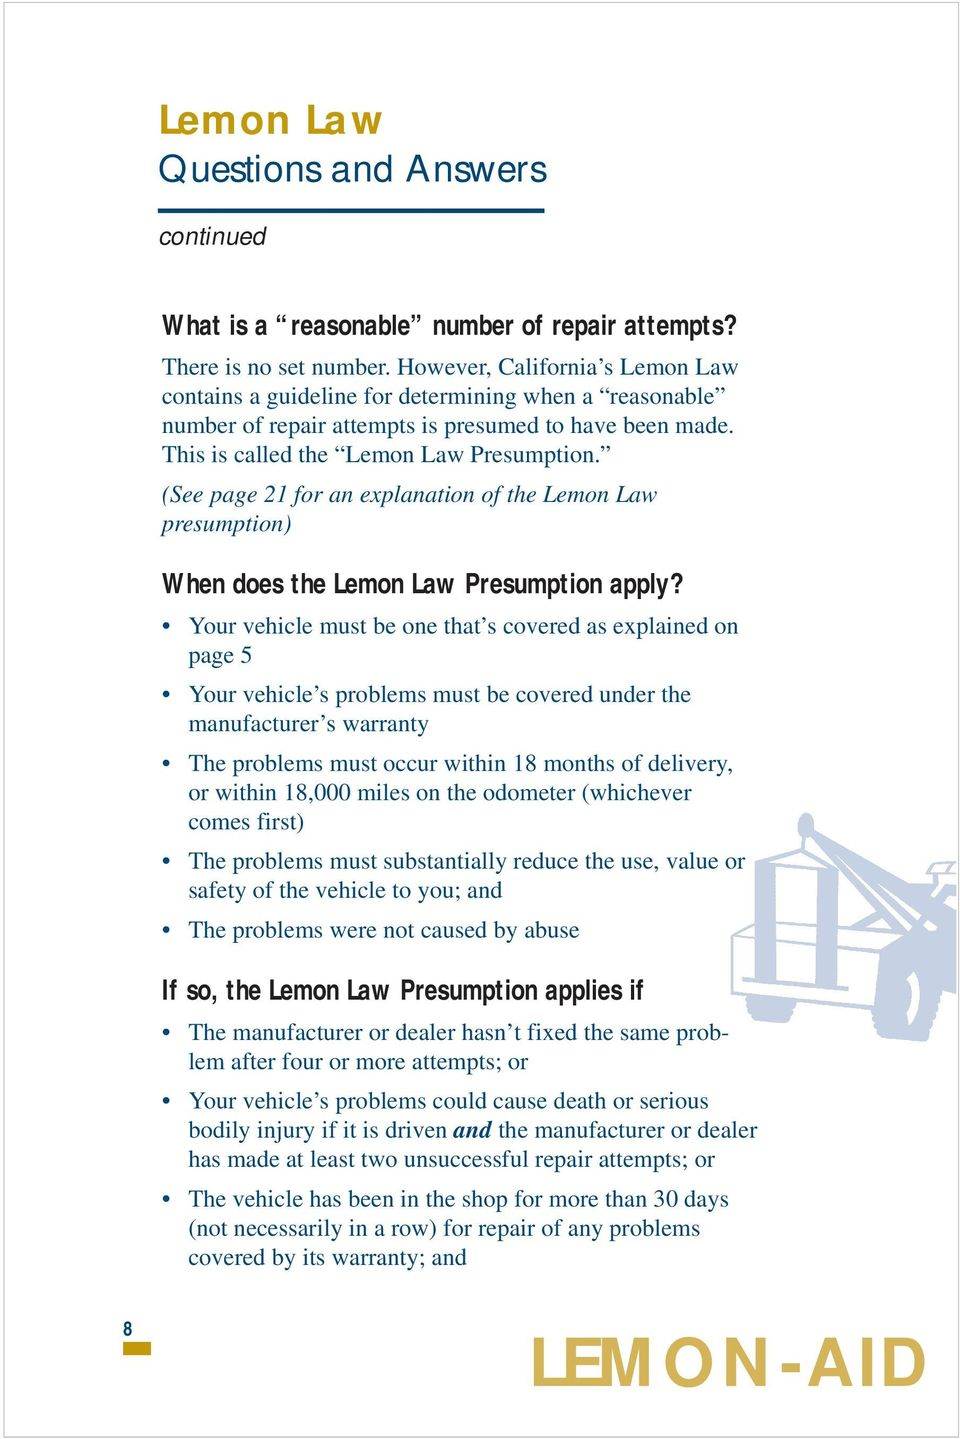 (See page 21 for an explanation of the Lemon Law presumption) When does the Lemon Law Presumption apply?